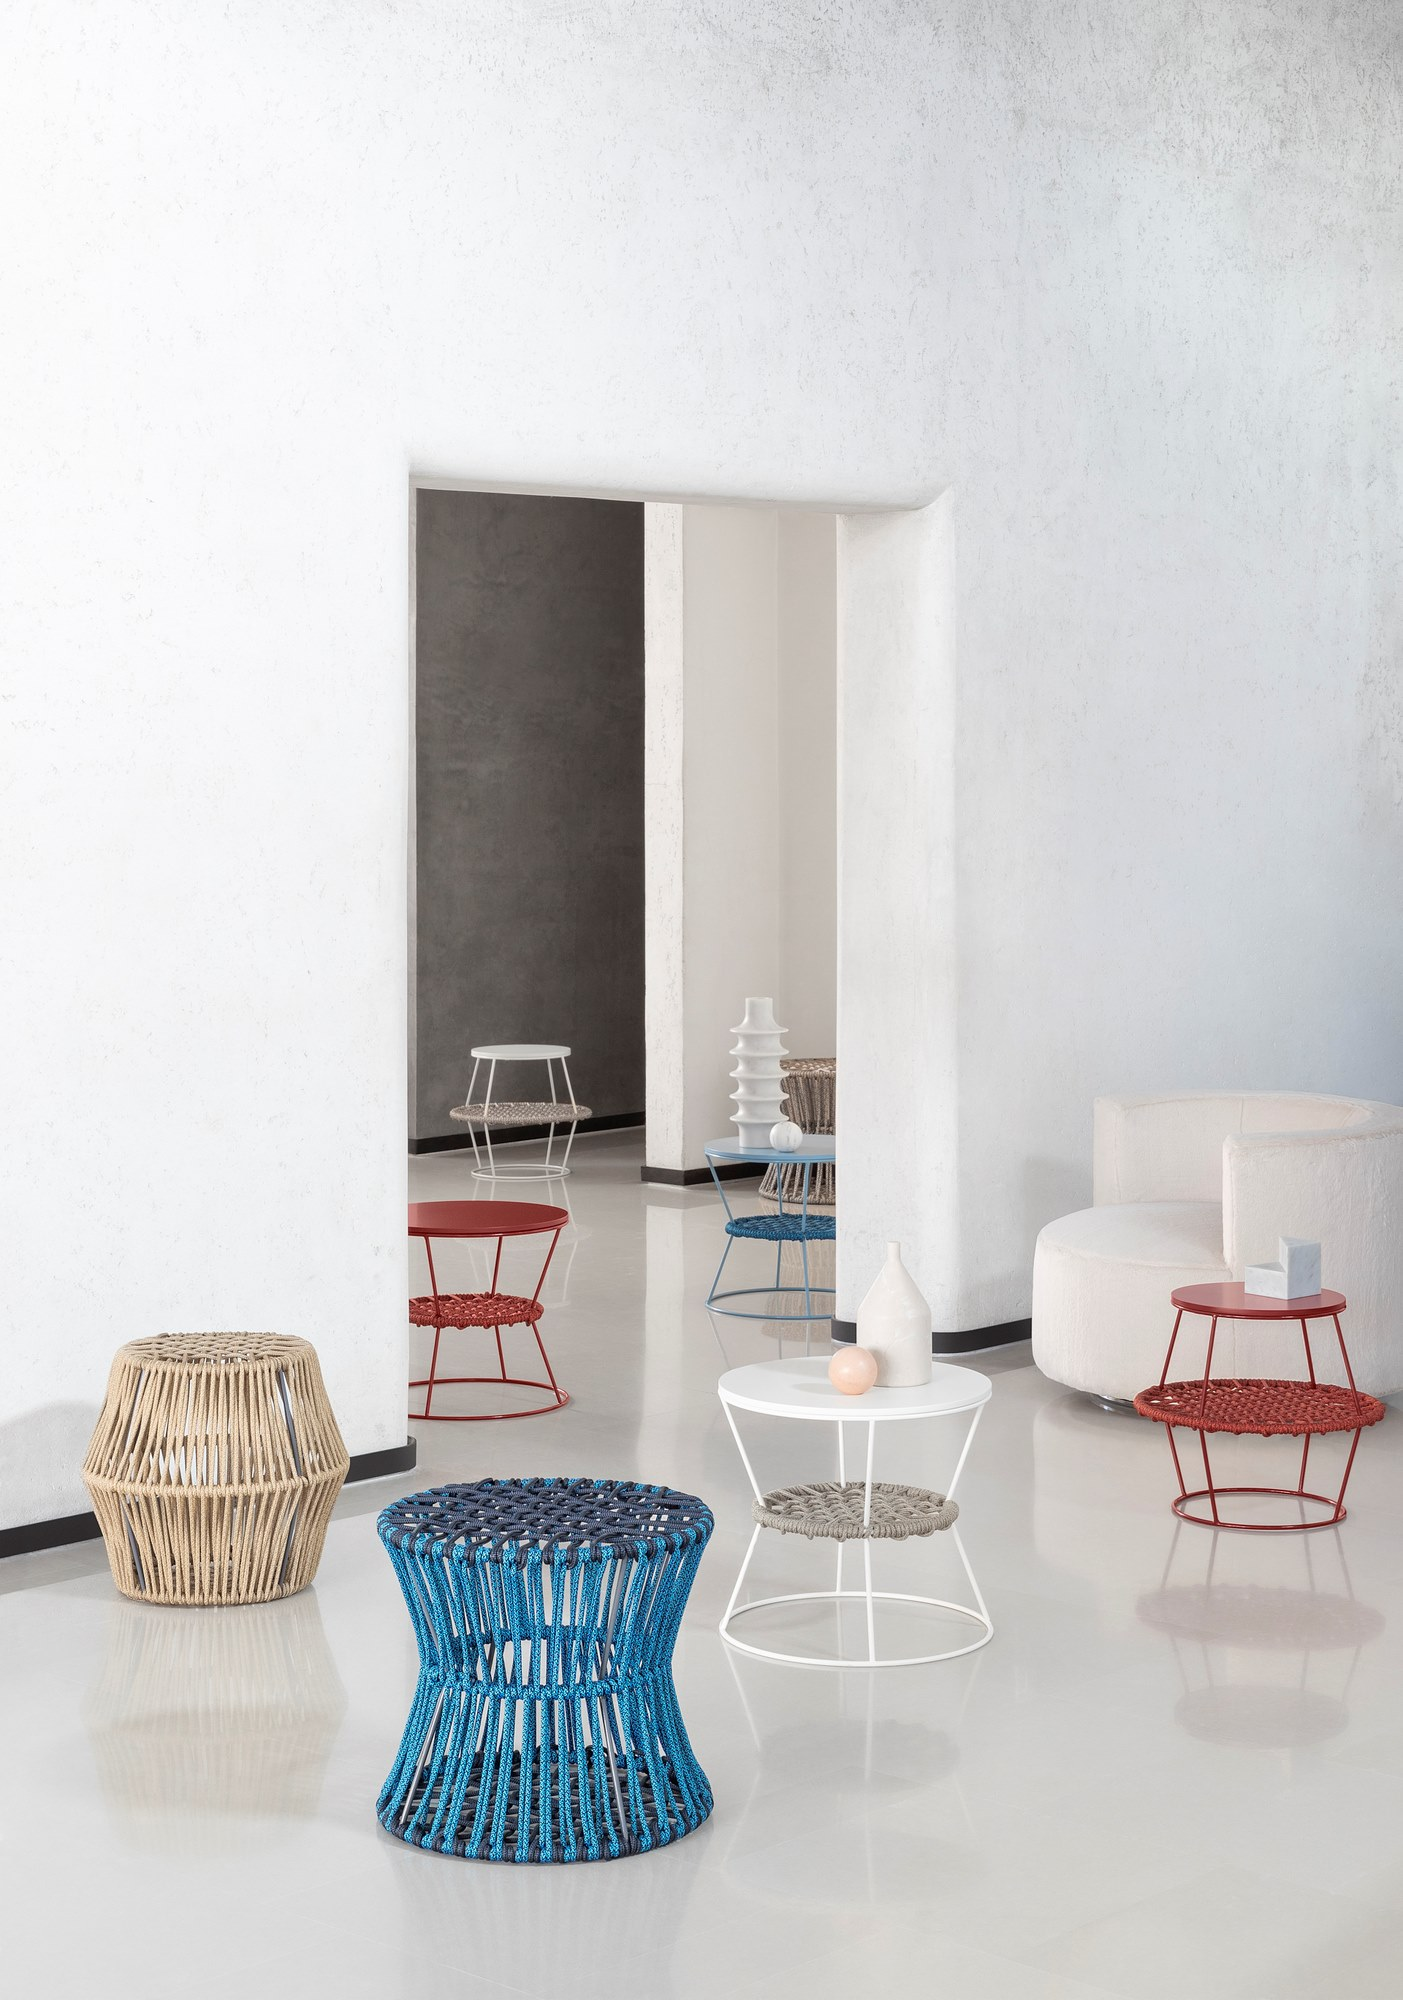 Ziggy Stool Hourglass - Ziggy is a round garden stool in polyester rope. Available in two variants.  Metal, wood, rope – simple materials which reinvent commonly used objects. A collection of poufs and coffee tables in metal rods and woven nautical cords, mixed together like the paints on an artist's palette. The reference to David Bowie's iconic Ziggy Stardust is no accident and relates to the irony in the idea of revolutionizing the type of accessory furniture in the area for relaxing. The barrel and hourglass silhouettes come together to make up islands which expand: interweaving and volumes are enhanced in the coordination of the mixed colors of the cord, pointing to a new idea of furnishing accessory with endless possibilities of personalizing the space. The two-tone plaited rope is an exclusive Saba combination. NB: The pouf (with a barrel and hourglass silhouette) is made of materials suitable for outdoor use.  Materials Structure in coated wire drawn with diameter 8 mm with plaiting of 6 mm diameter of polyester ropes. Finishing and ropes are suitable for outdoor use. The upper top surface of the low table is in MDF h 19 mn lacquered finish. | Matter of Stuff